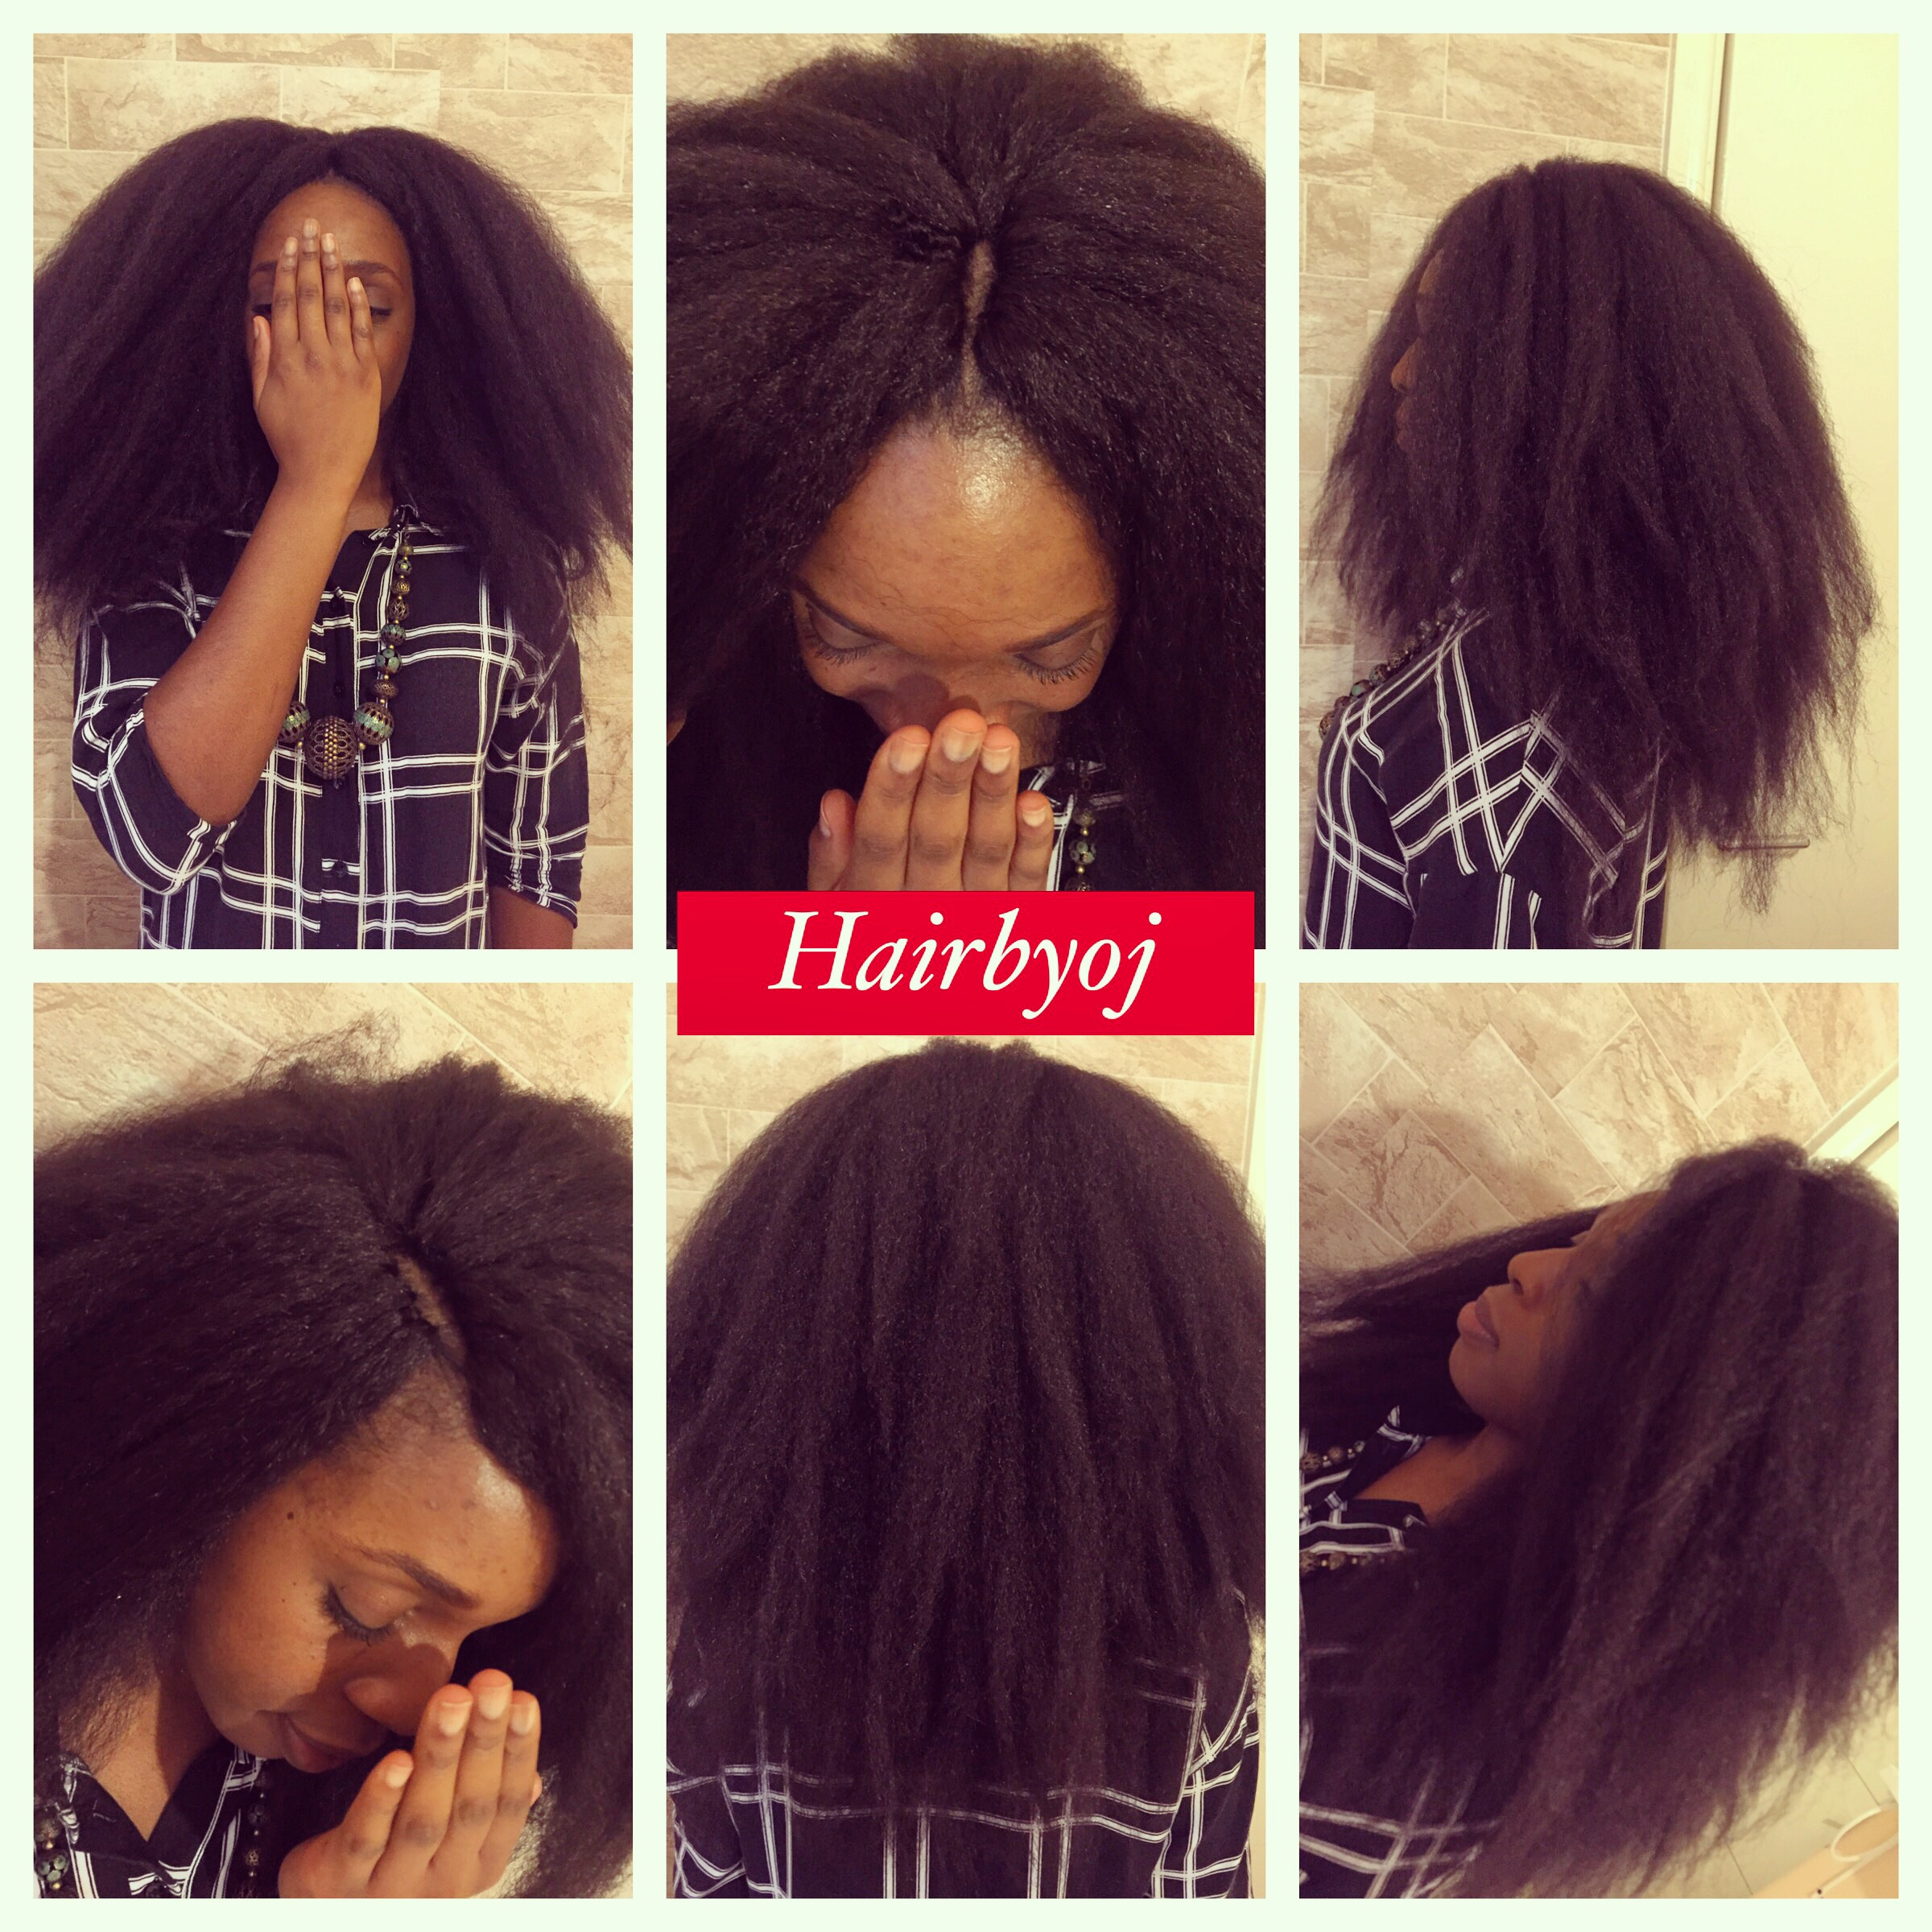 Shoulder Length Crochet Braids With Straight Kanekelon Hair And Versatile Middle And Side Partings Hairbyoj